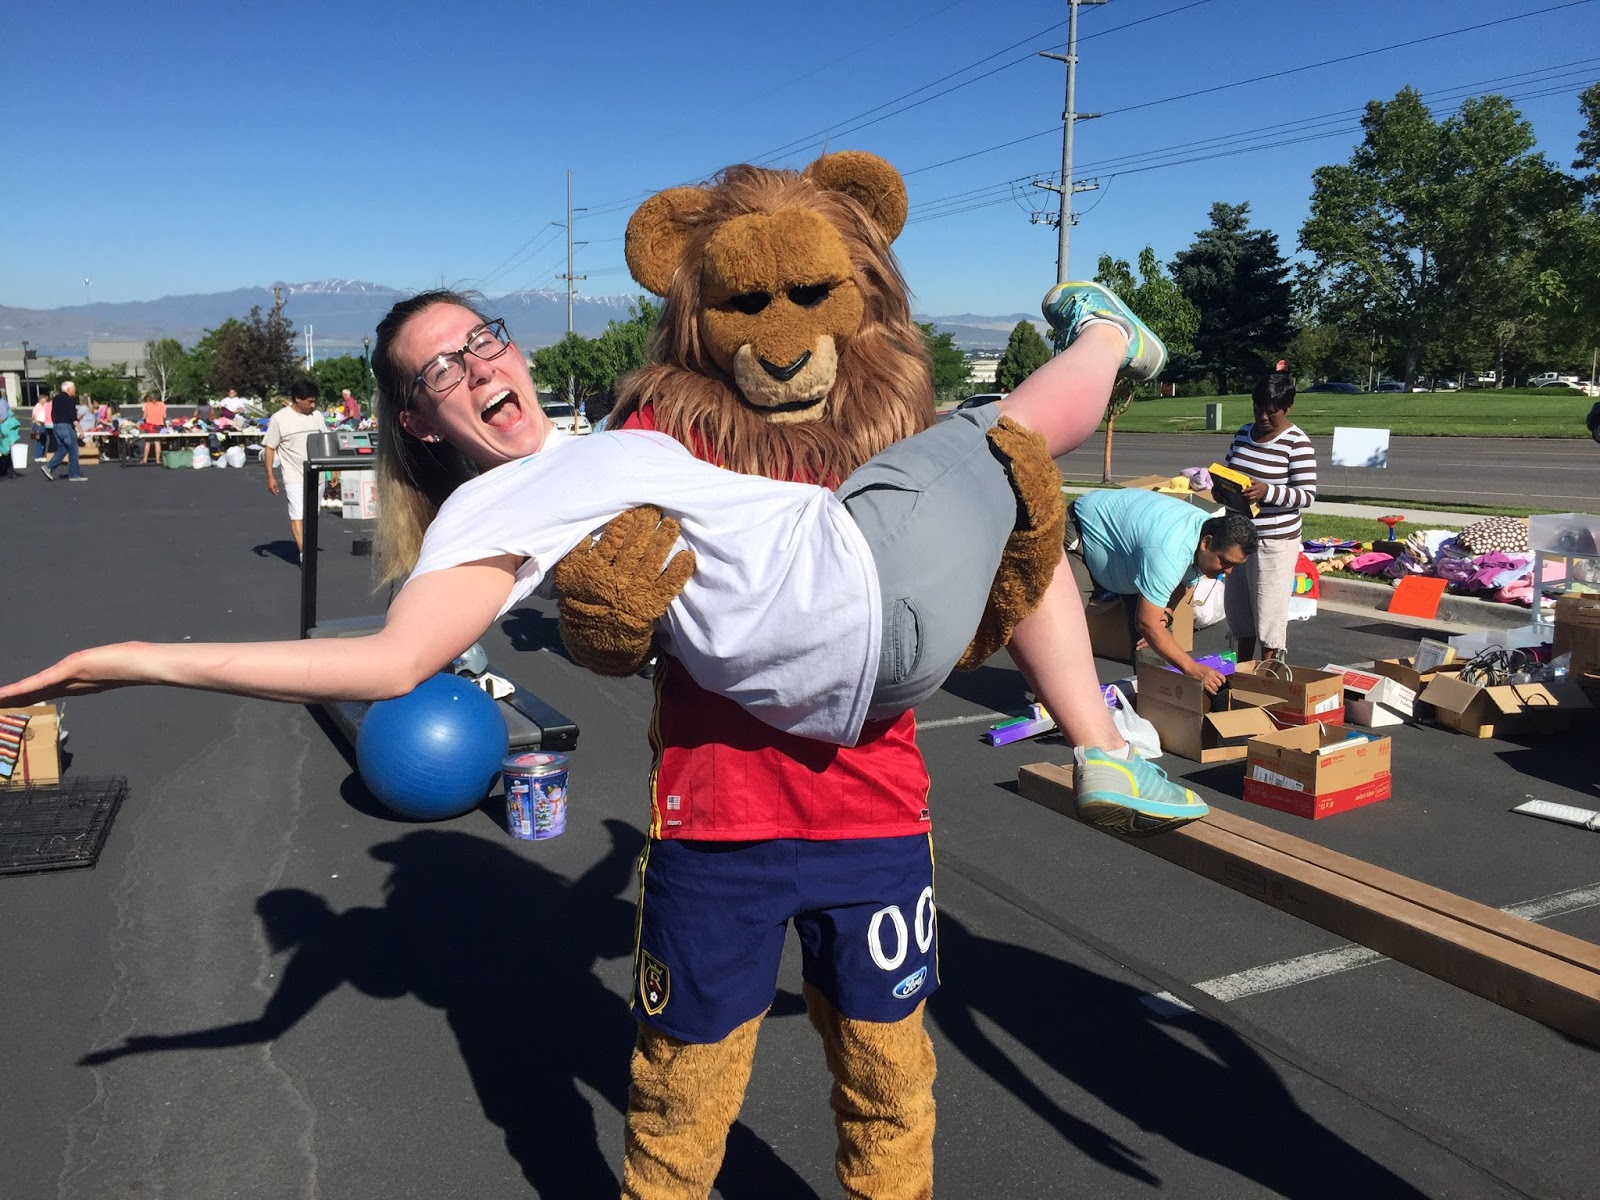 Leo the Lion and I at our fertility fundraiser